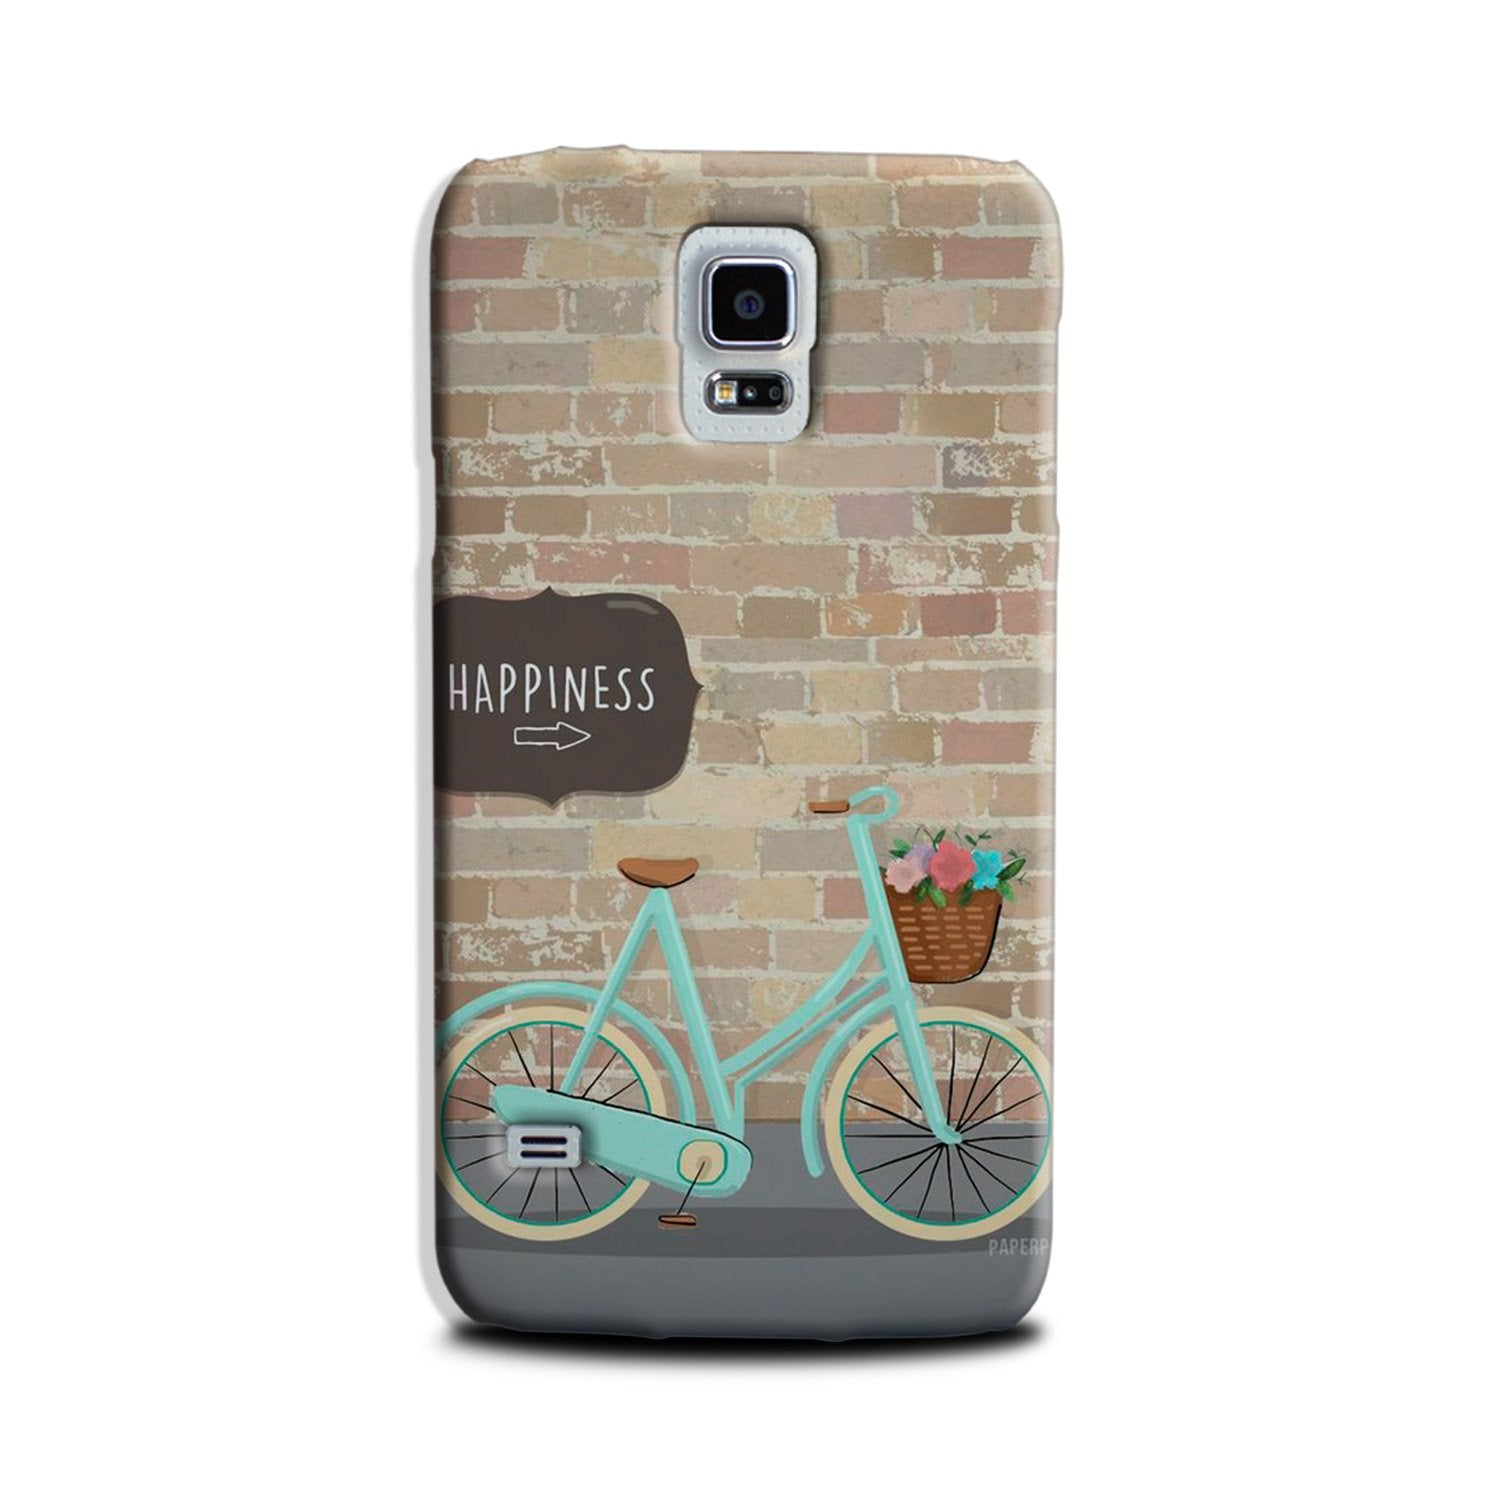 Happiness Case for Galaxy S5